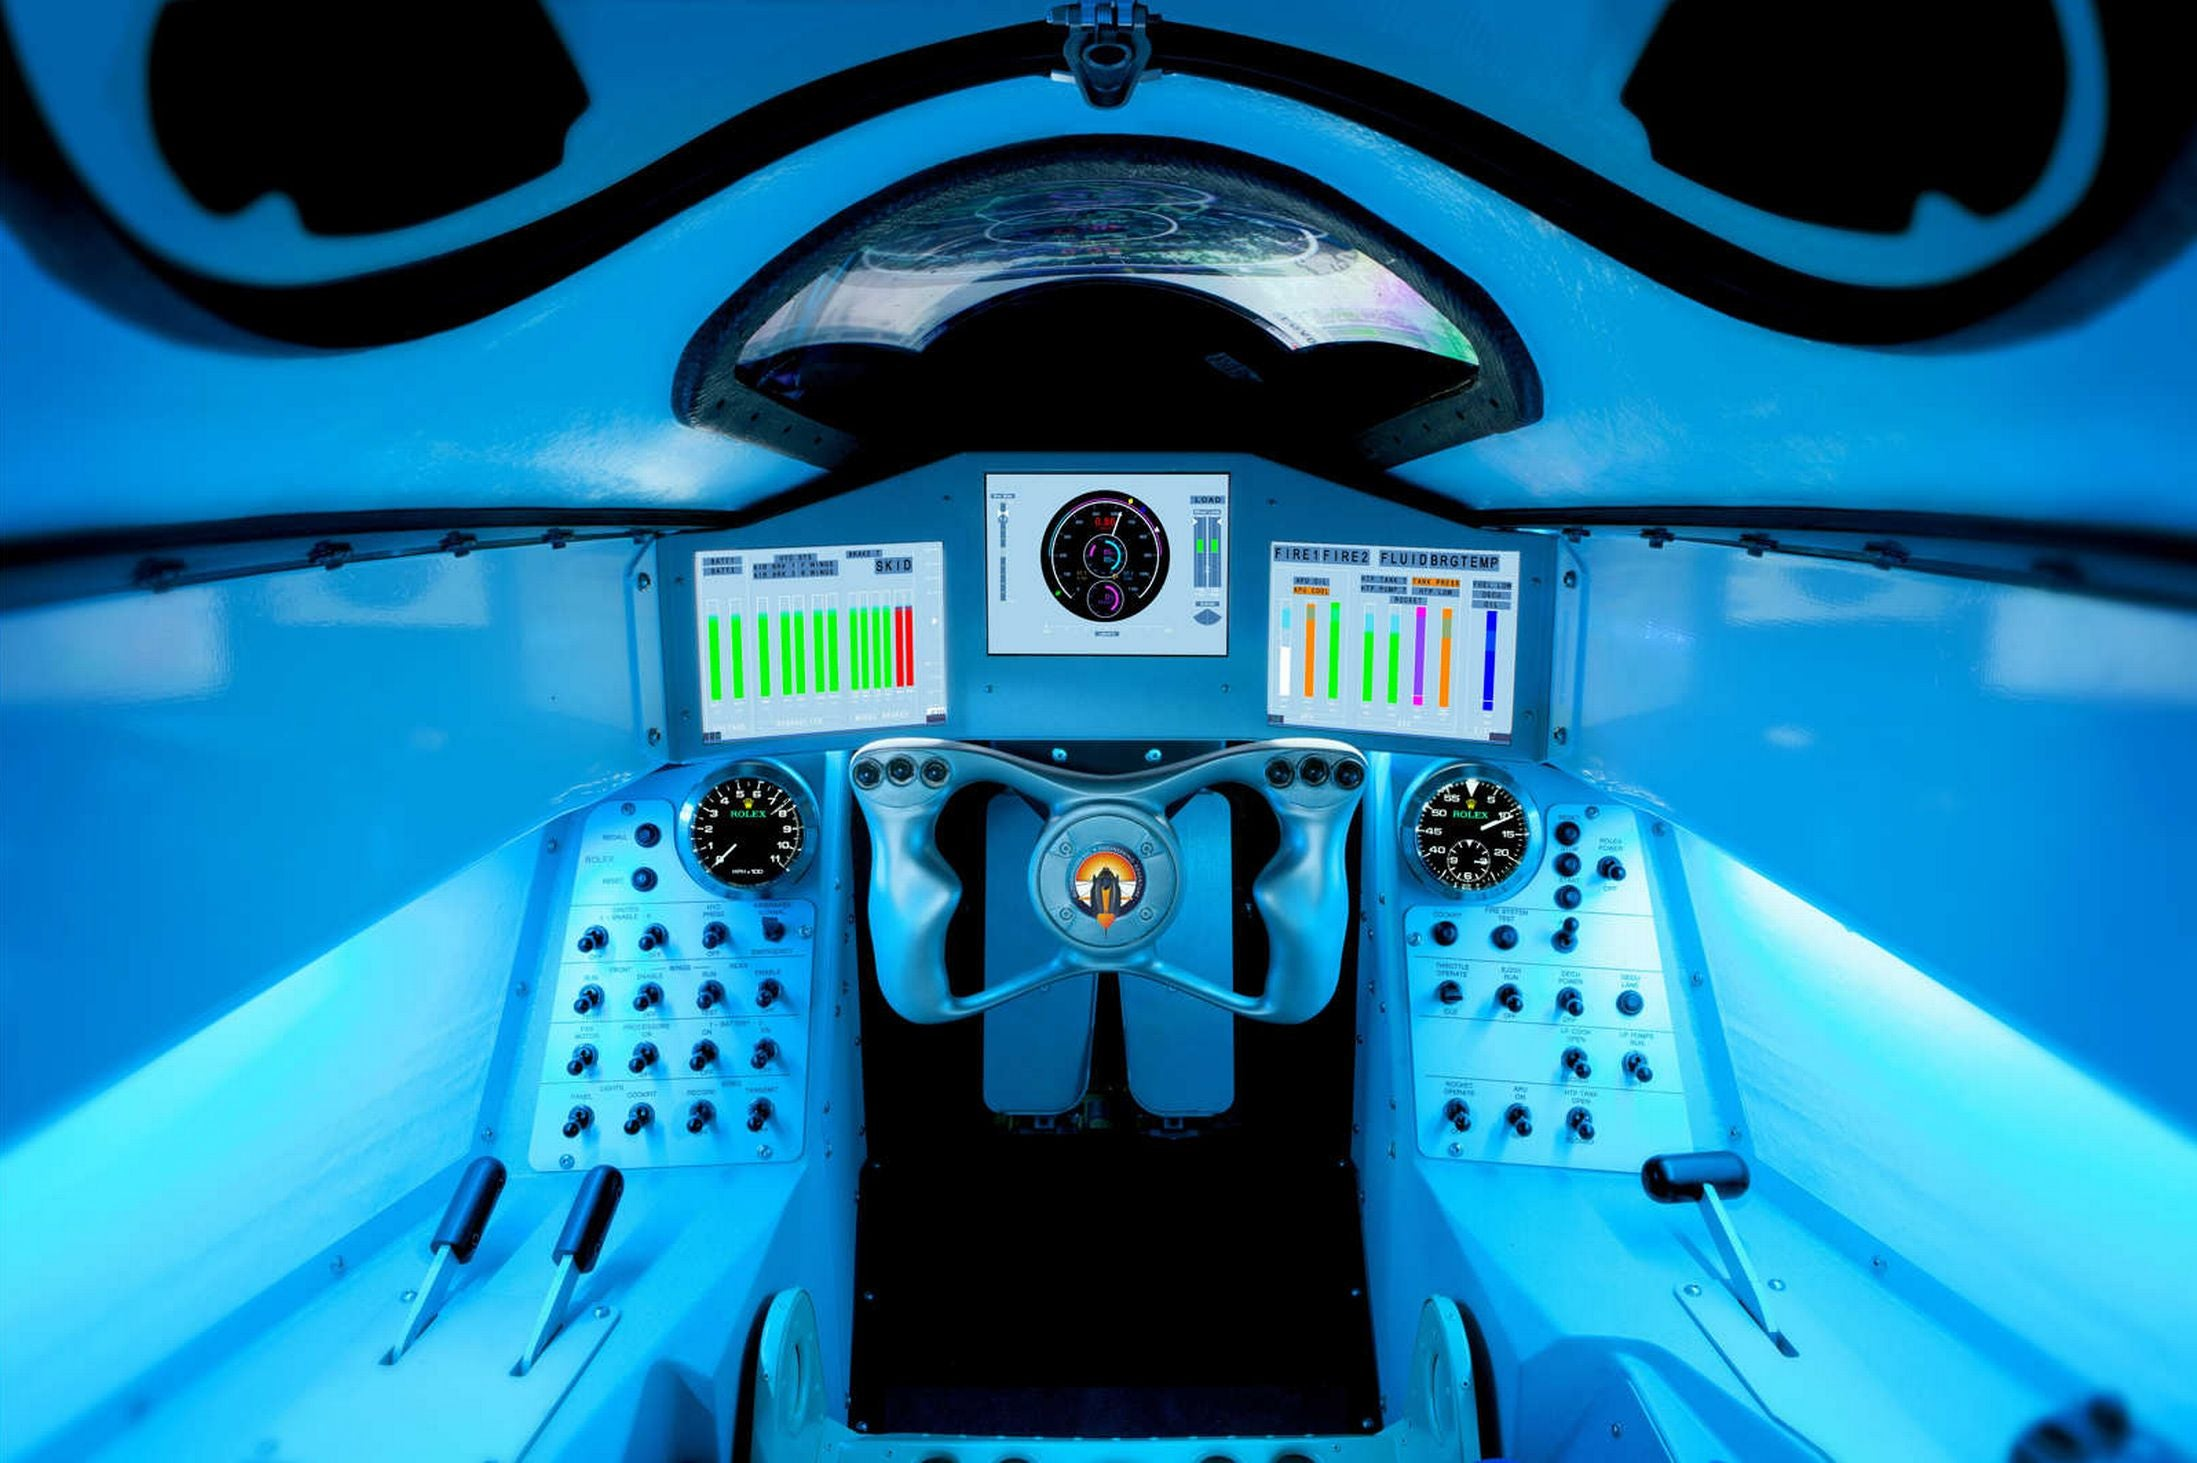 This Is The Cockpit Of The Supersonic Car That Will Reach 1600KPH